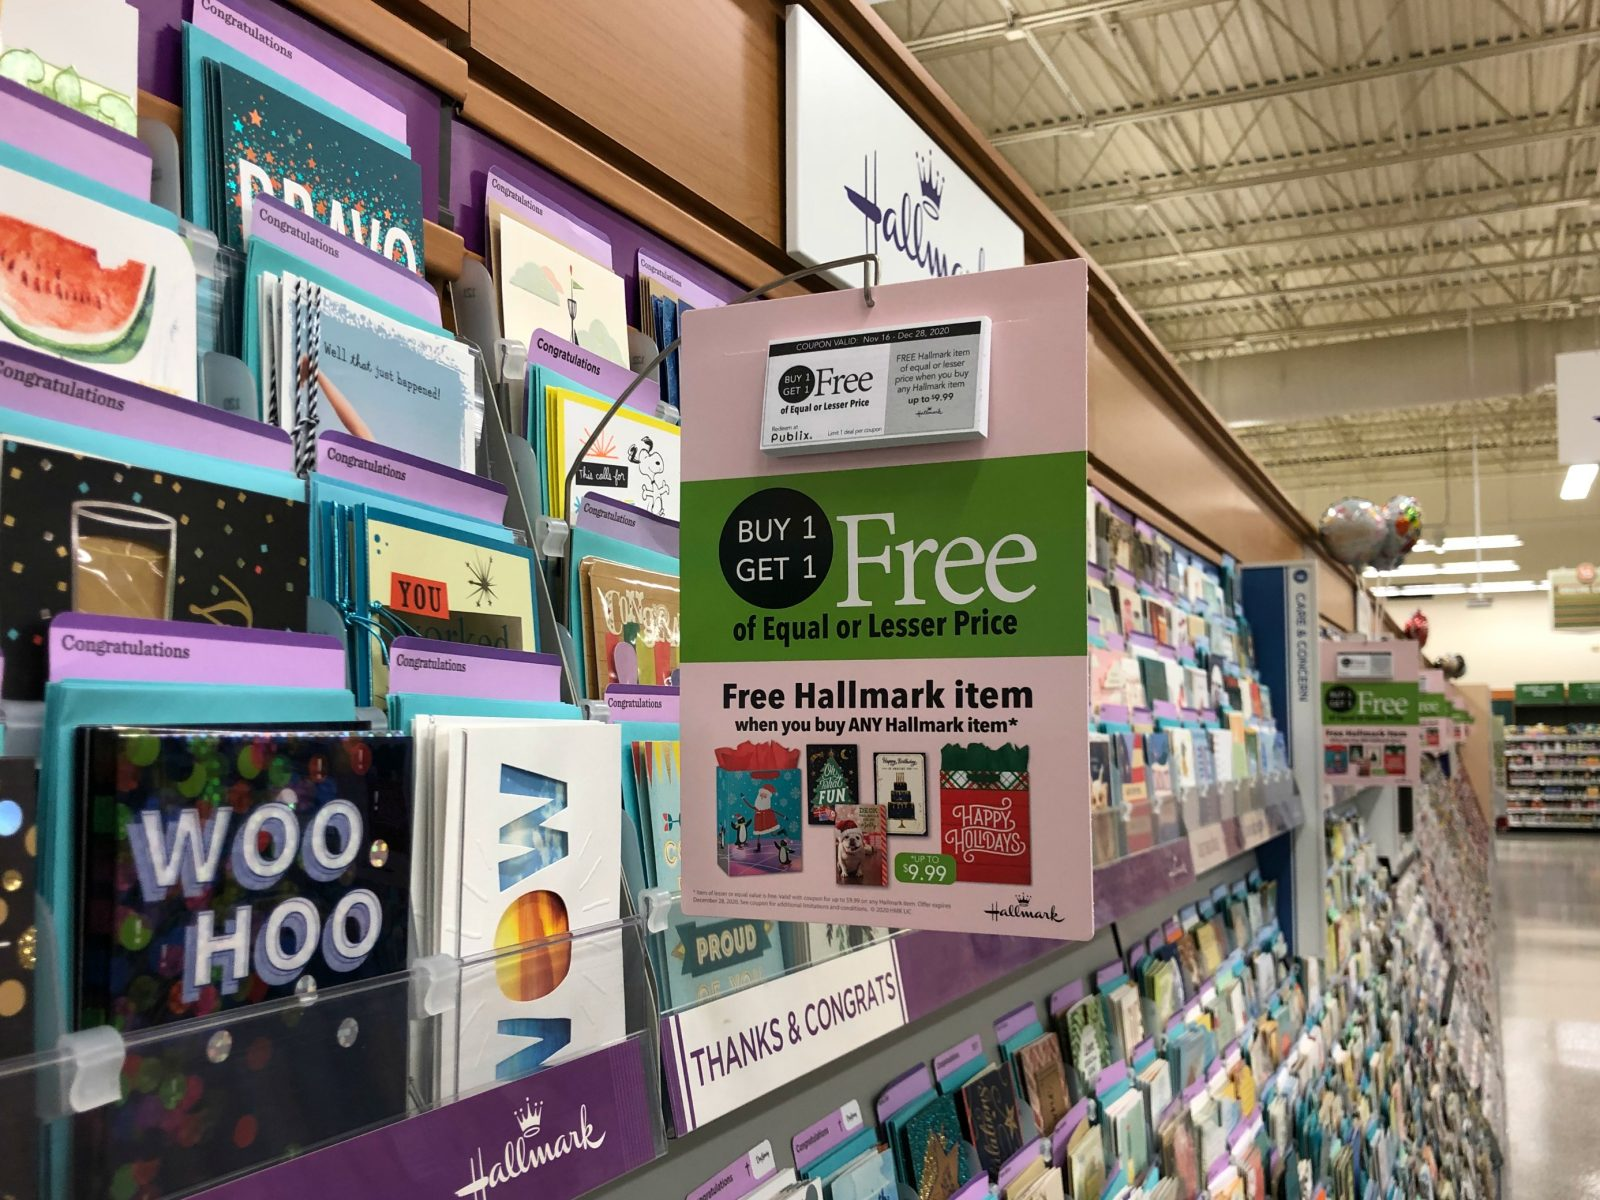 Hallmark Publix Coupon Means Cheap Cards (Bags, Wrapping Paper, Bows & More) At Publix on I Heart Publix